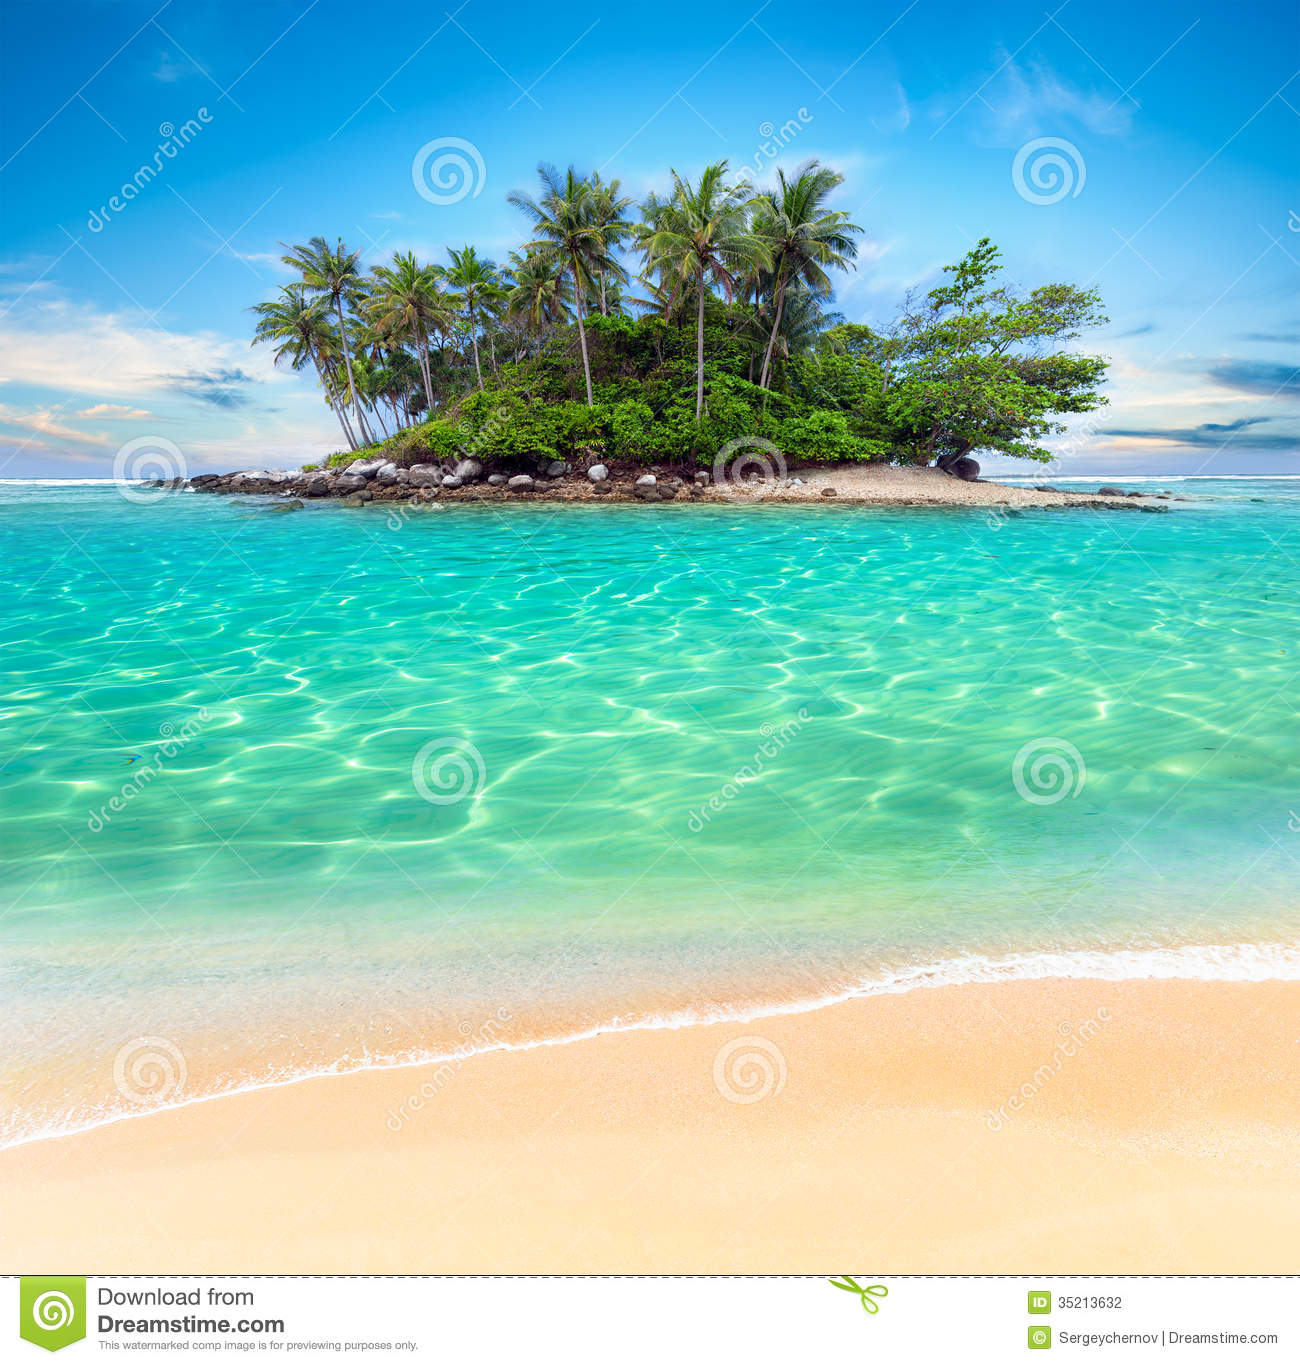 Sand Island: Tropical Island And Sand Beach Exotic Travel Background